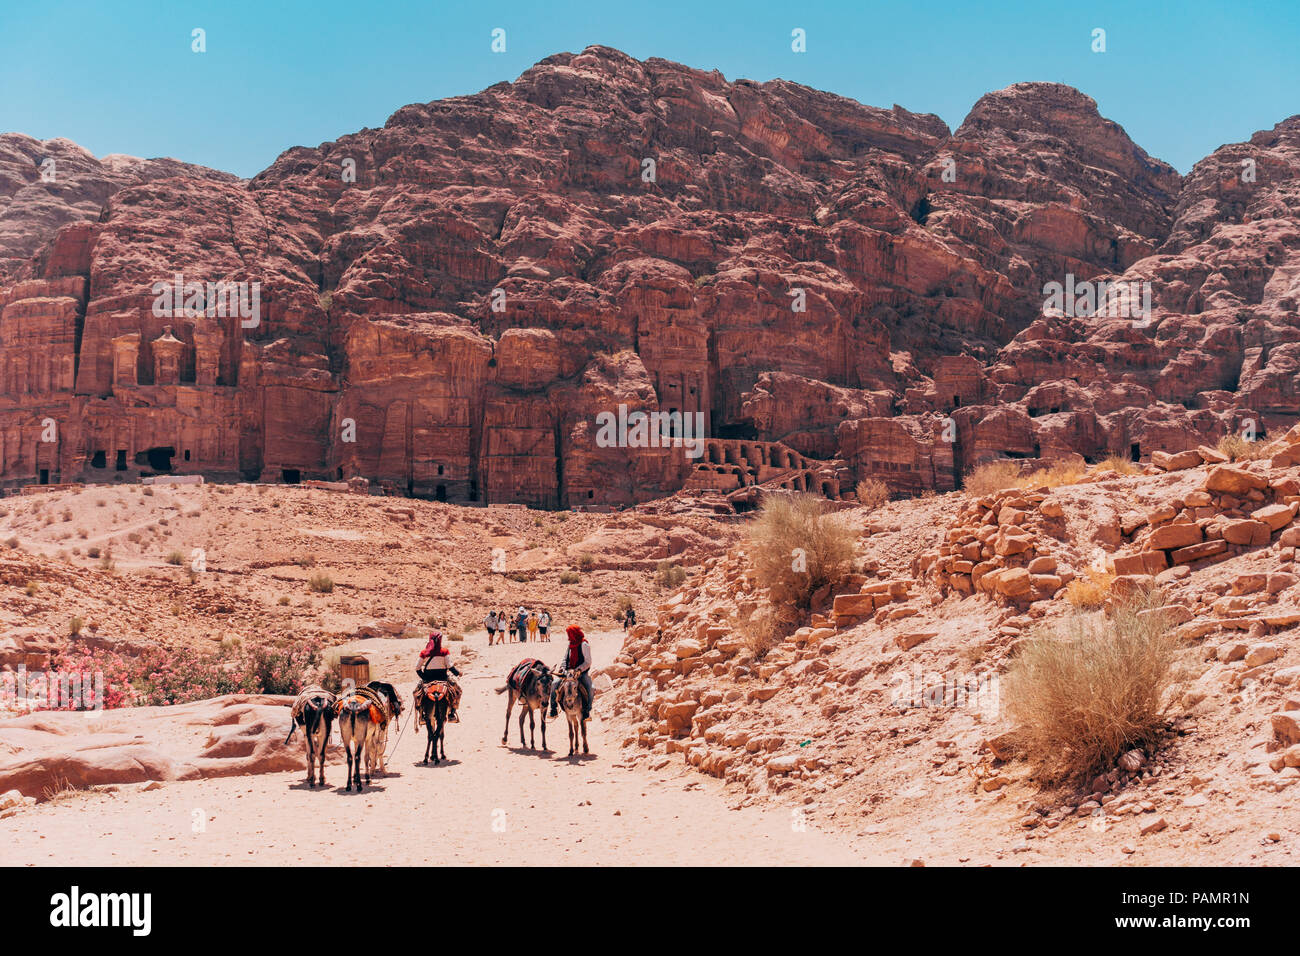 men on mules trek down the main path in front of the tombs in the Lost City of Petra, Jordan - Stock Image